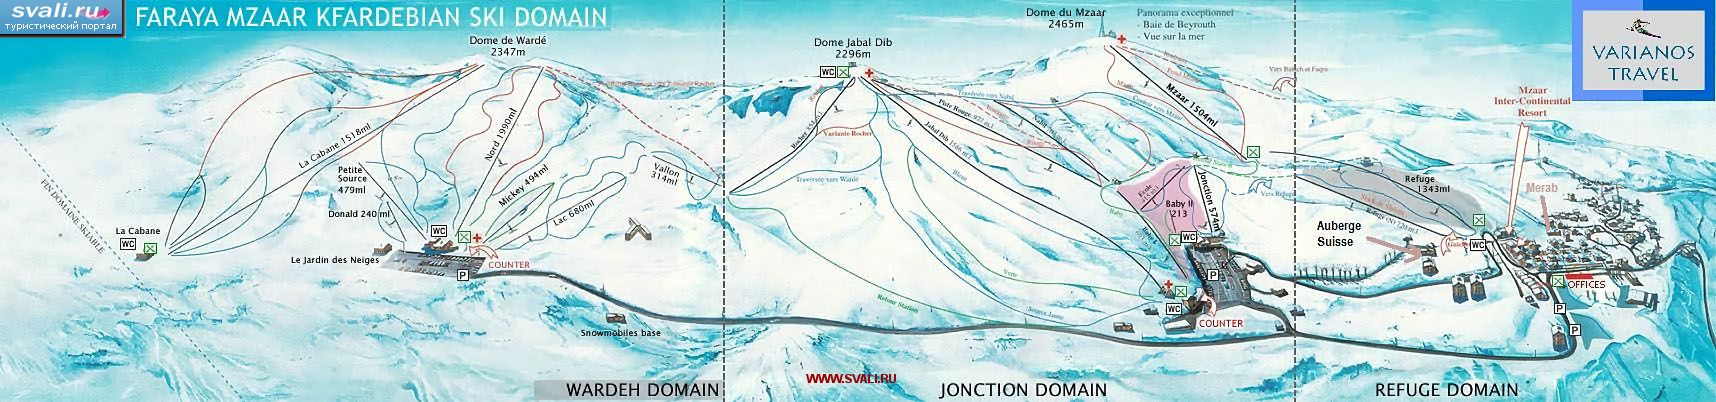 Skimap.  Click the photo to zoom.  Gudauri.  831 km.  Saklikent.